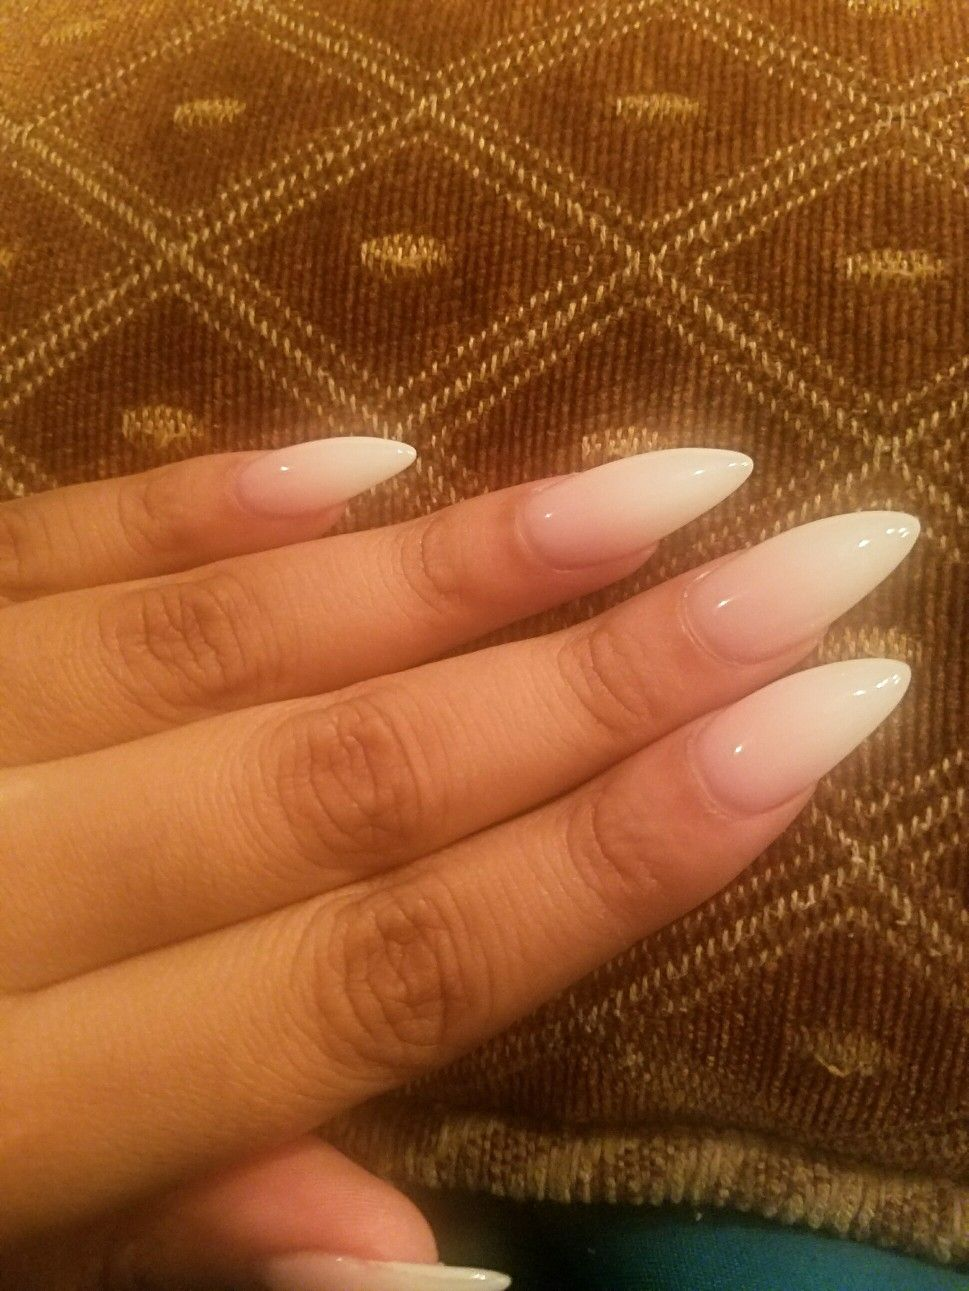 Almond Shaped Pink And White Ombre White Acrylic Nails Pink Ombre Nails Almond Acrylic Nails